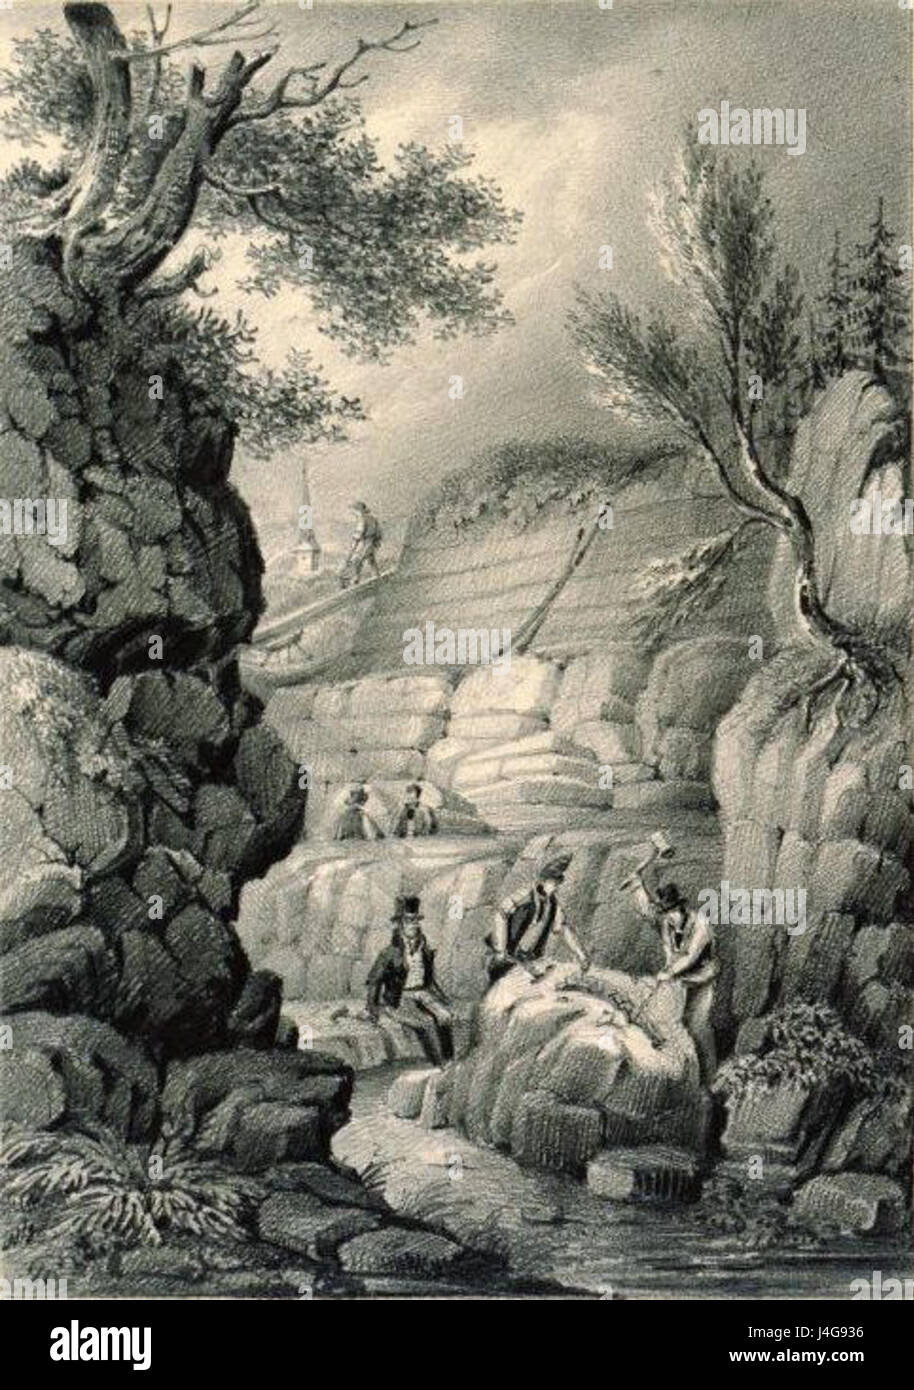 Sketch of Tilgate Quarry with Gideon Mantell Overseeing the Uncovering of Fossils - Stock Image